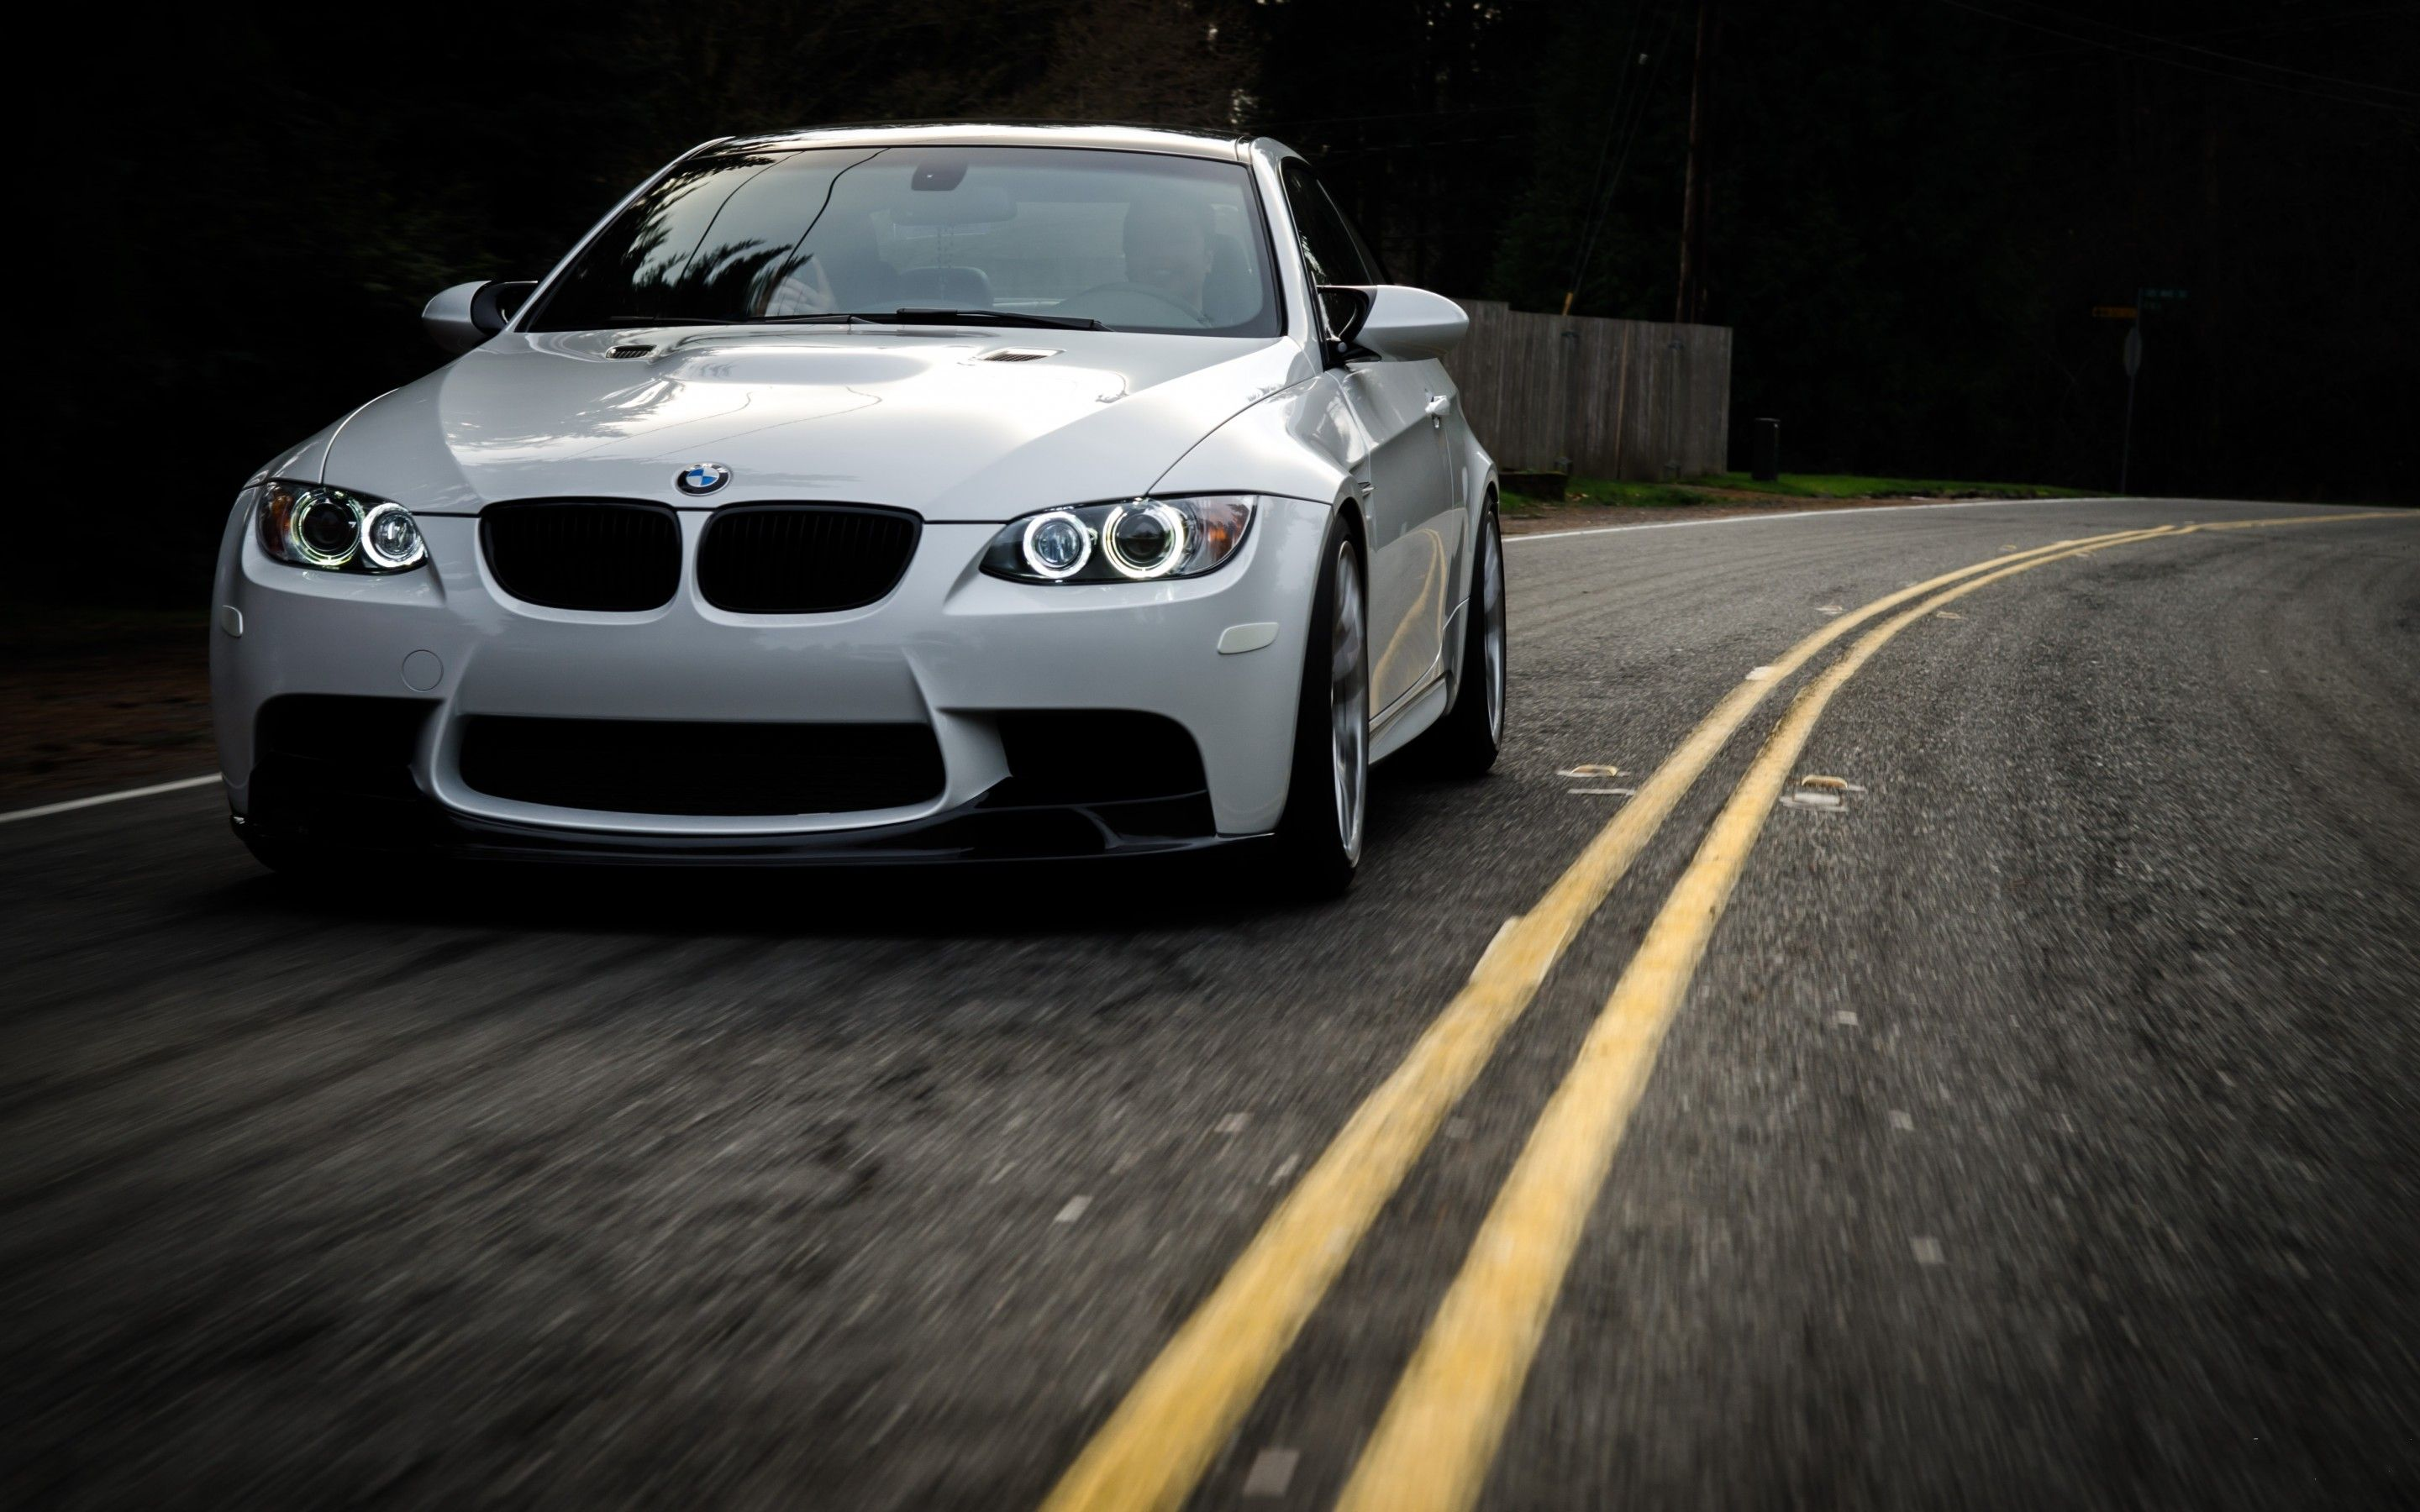 M3 Wallpapers 91 2880x1800